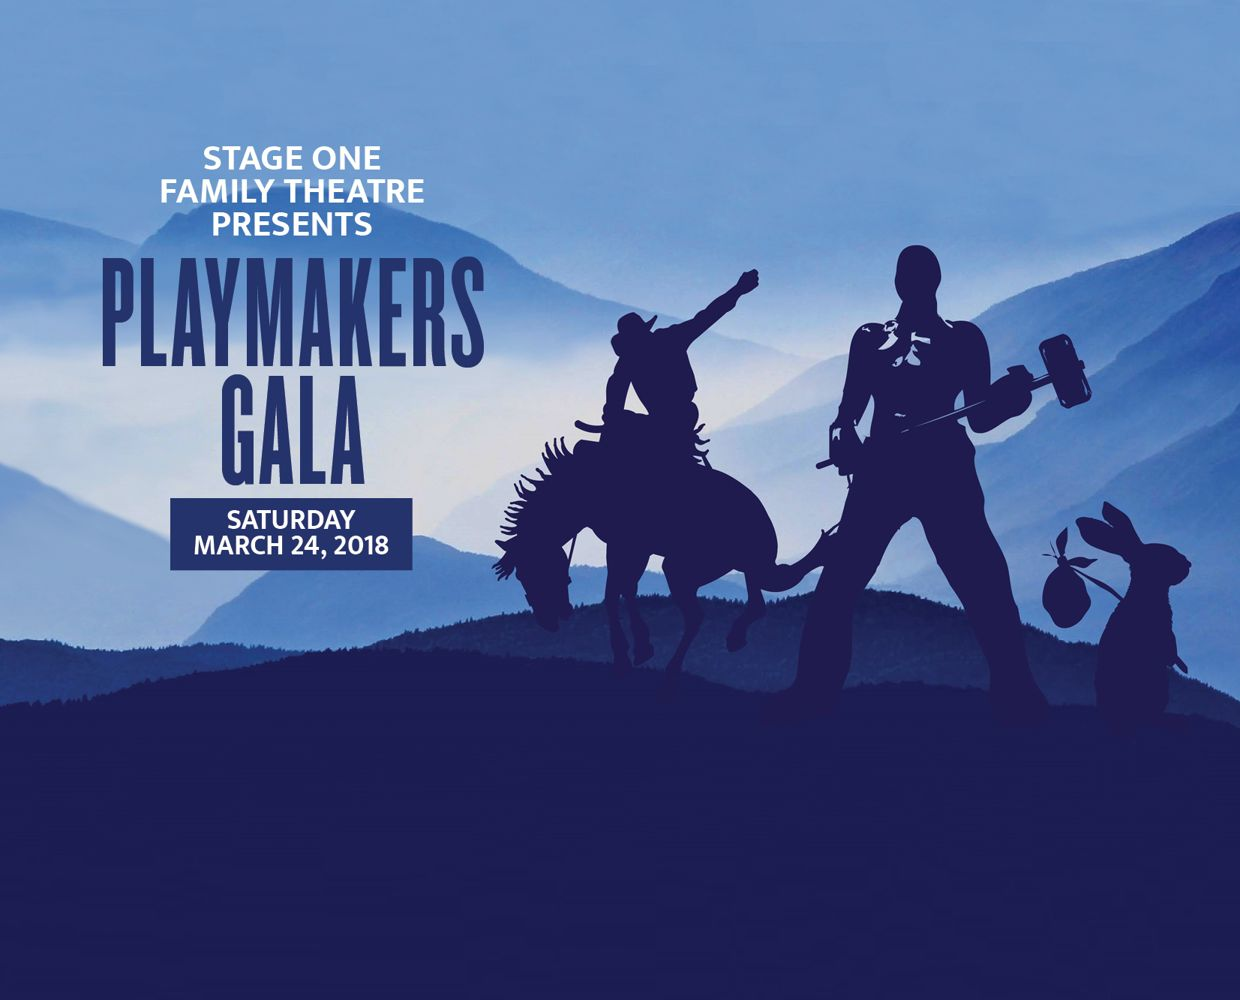 March 24 - Playmakers Gala image